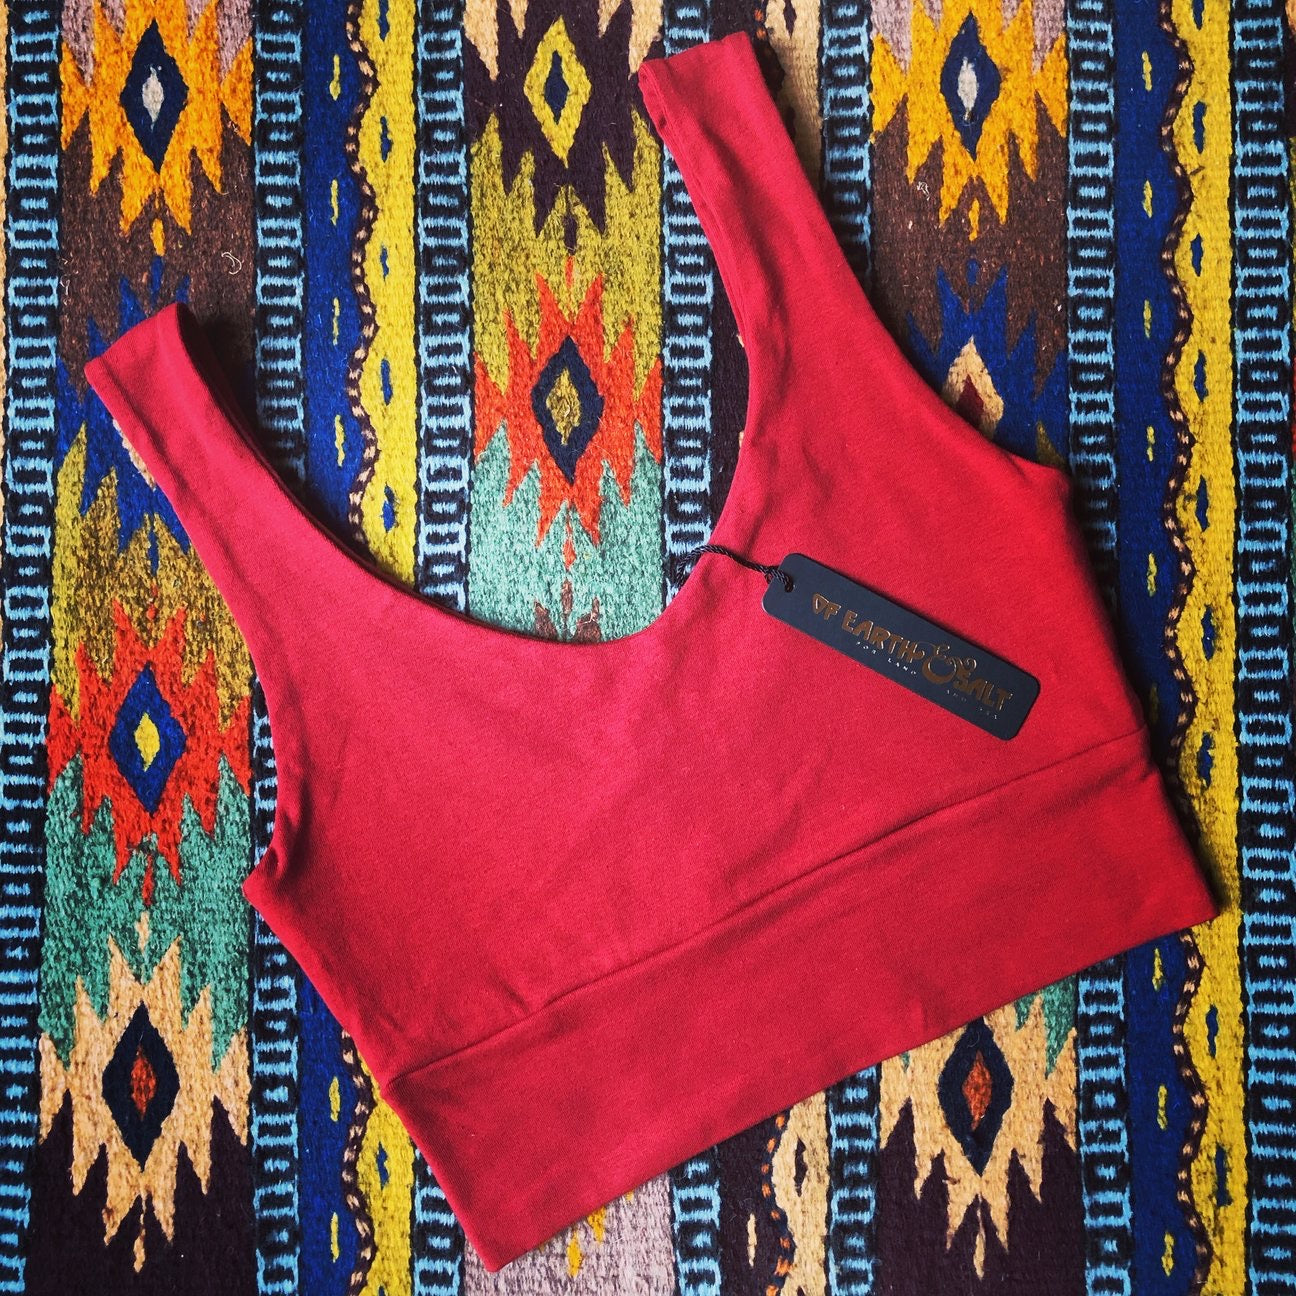 Double Trouble High Waisted Undies || Carmine Cotton